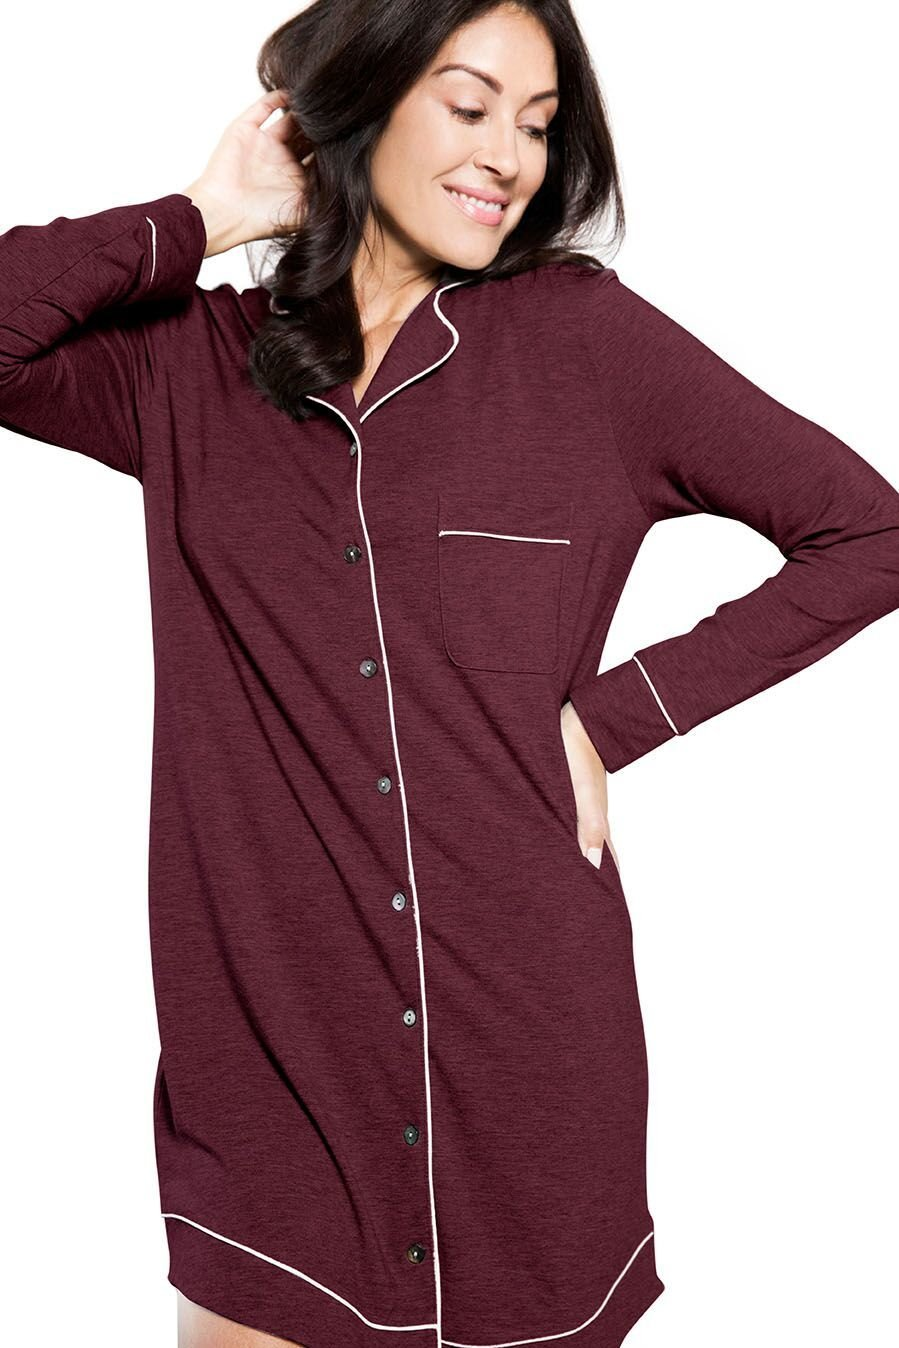 LUSOME Luxe Womens Marilyn Classic Long Sleep Shirt, Advanced Moisture Control With Xirotex, Sizes XS-XL